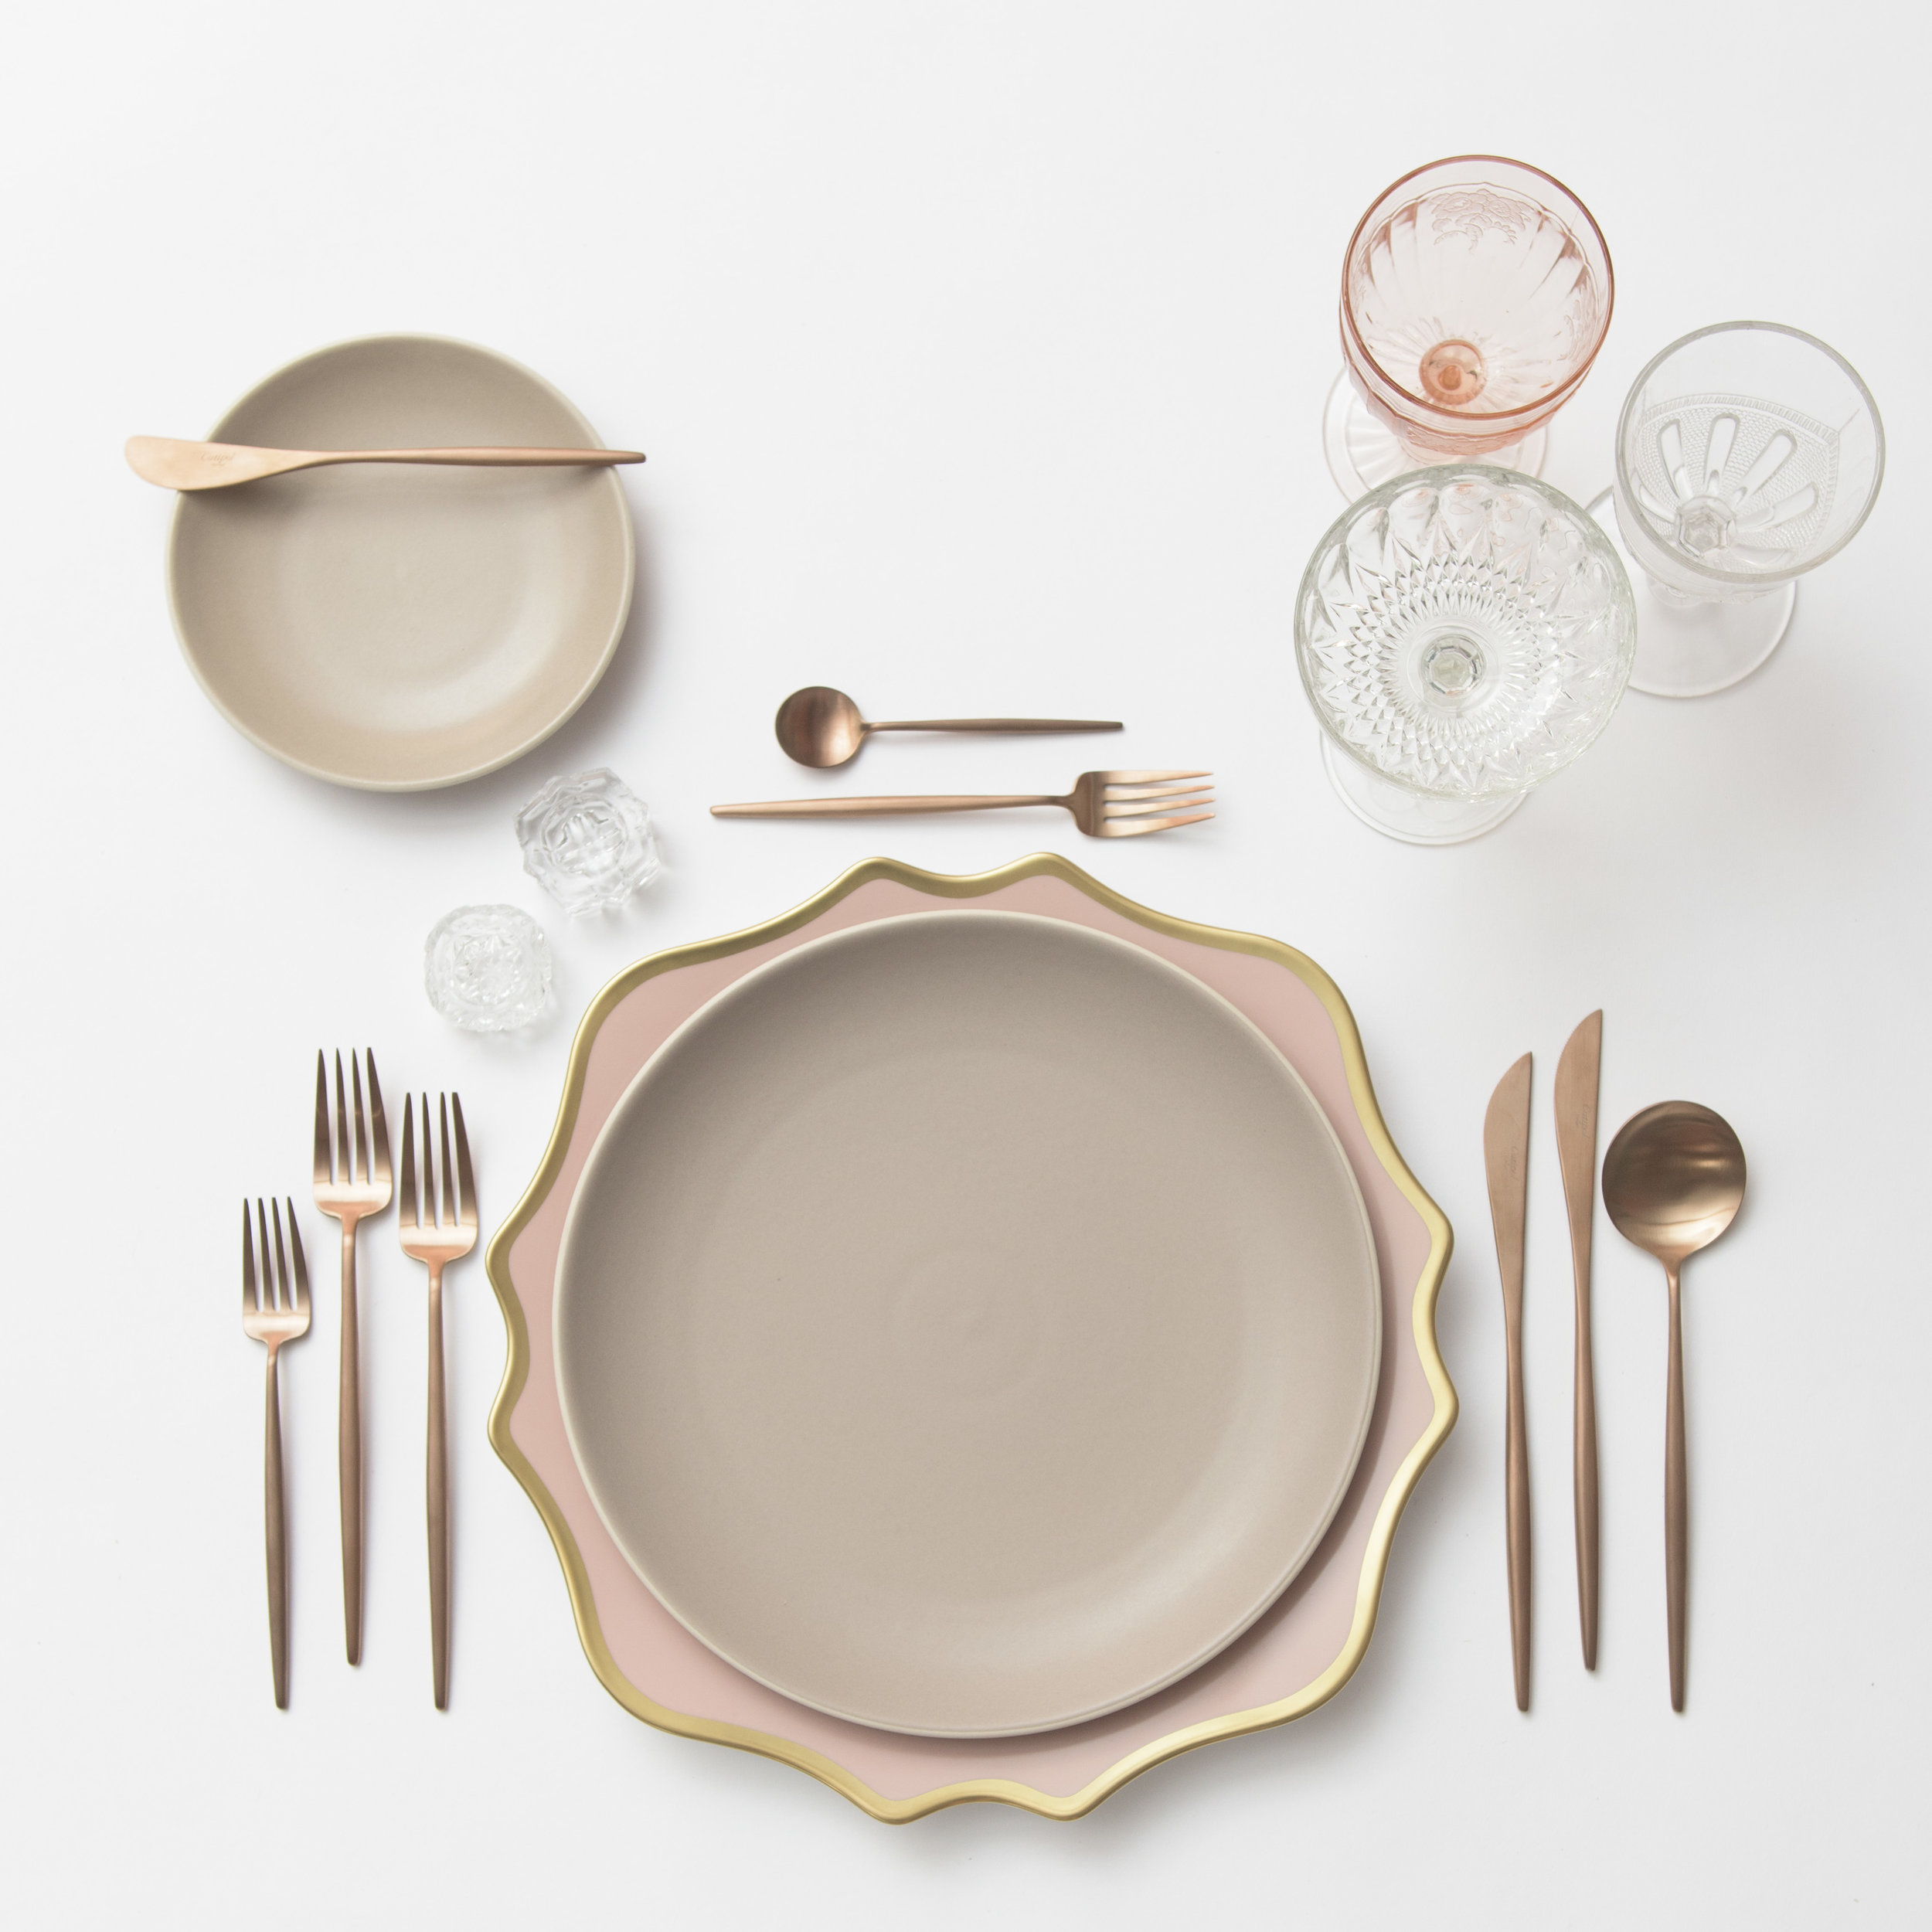 RENT: Anna Weatherley Chargers in Desert Rose/Gold +Heath Ceramics in French Grey + Moon Flatware in Brushed Rose Gold + Pink Vintage Goblets + Early American Pressed Glass Goblets + Vintage Champagne Coupes + Antique Crystal Salt Cellars  SHOP:Moon Flatware in Brushed Rose Gold